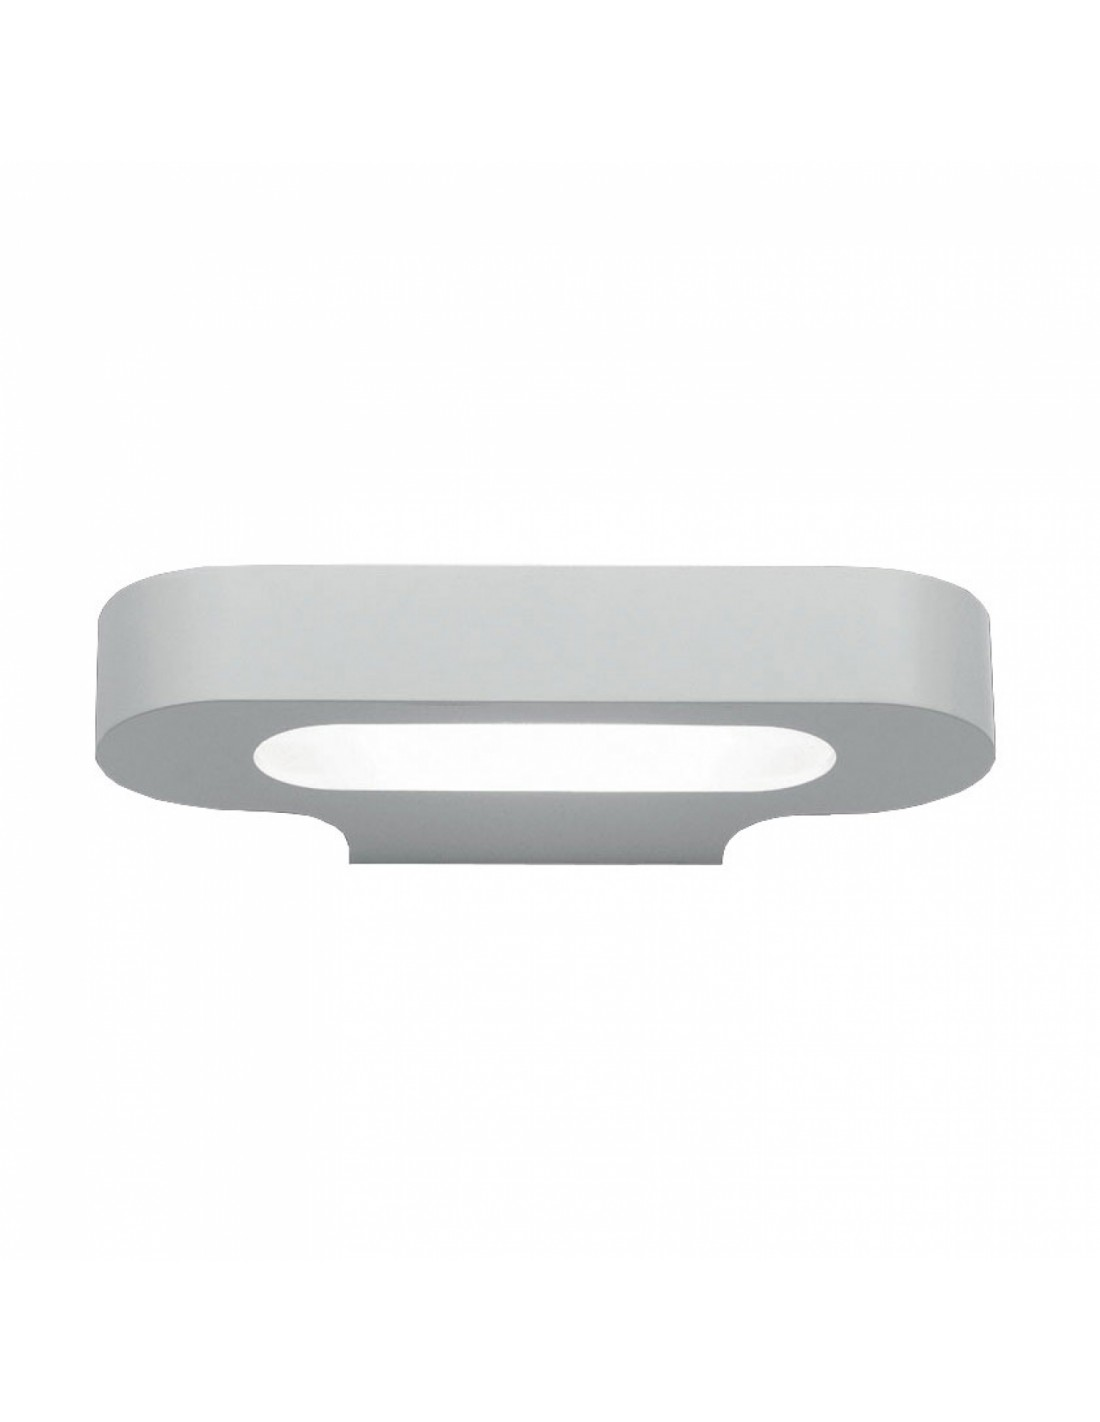 Applique Talo LED blanc vue de face Artemide